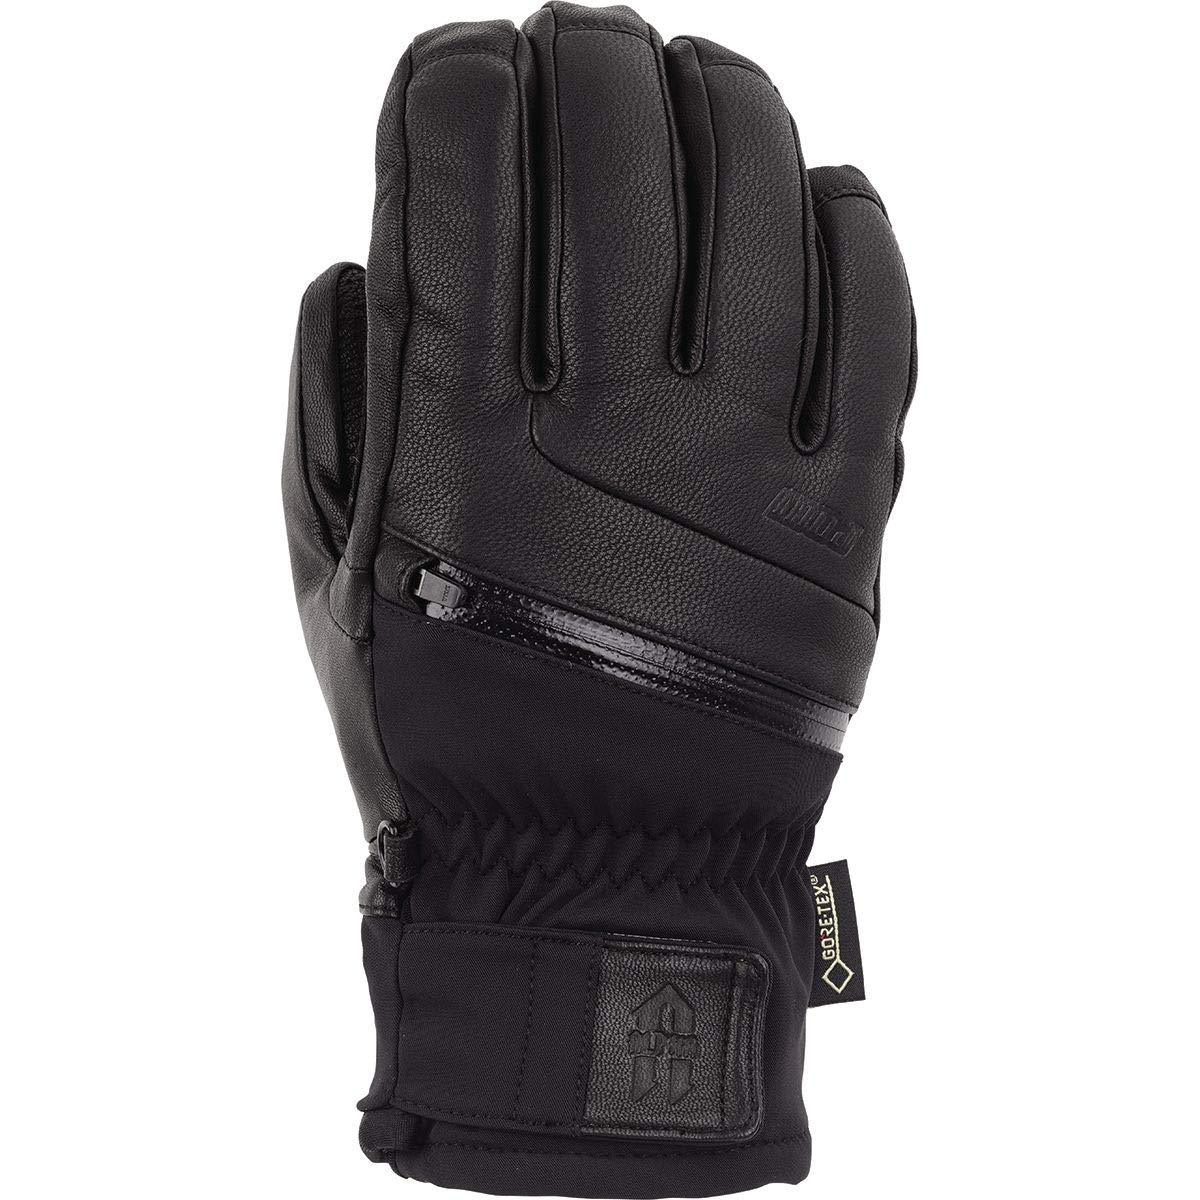 Pow Gloves Alpha GTX Glove - Men's Black, L by Pow Gloves